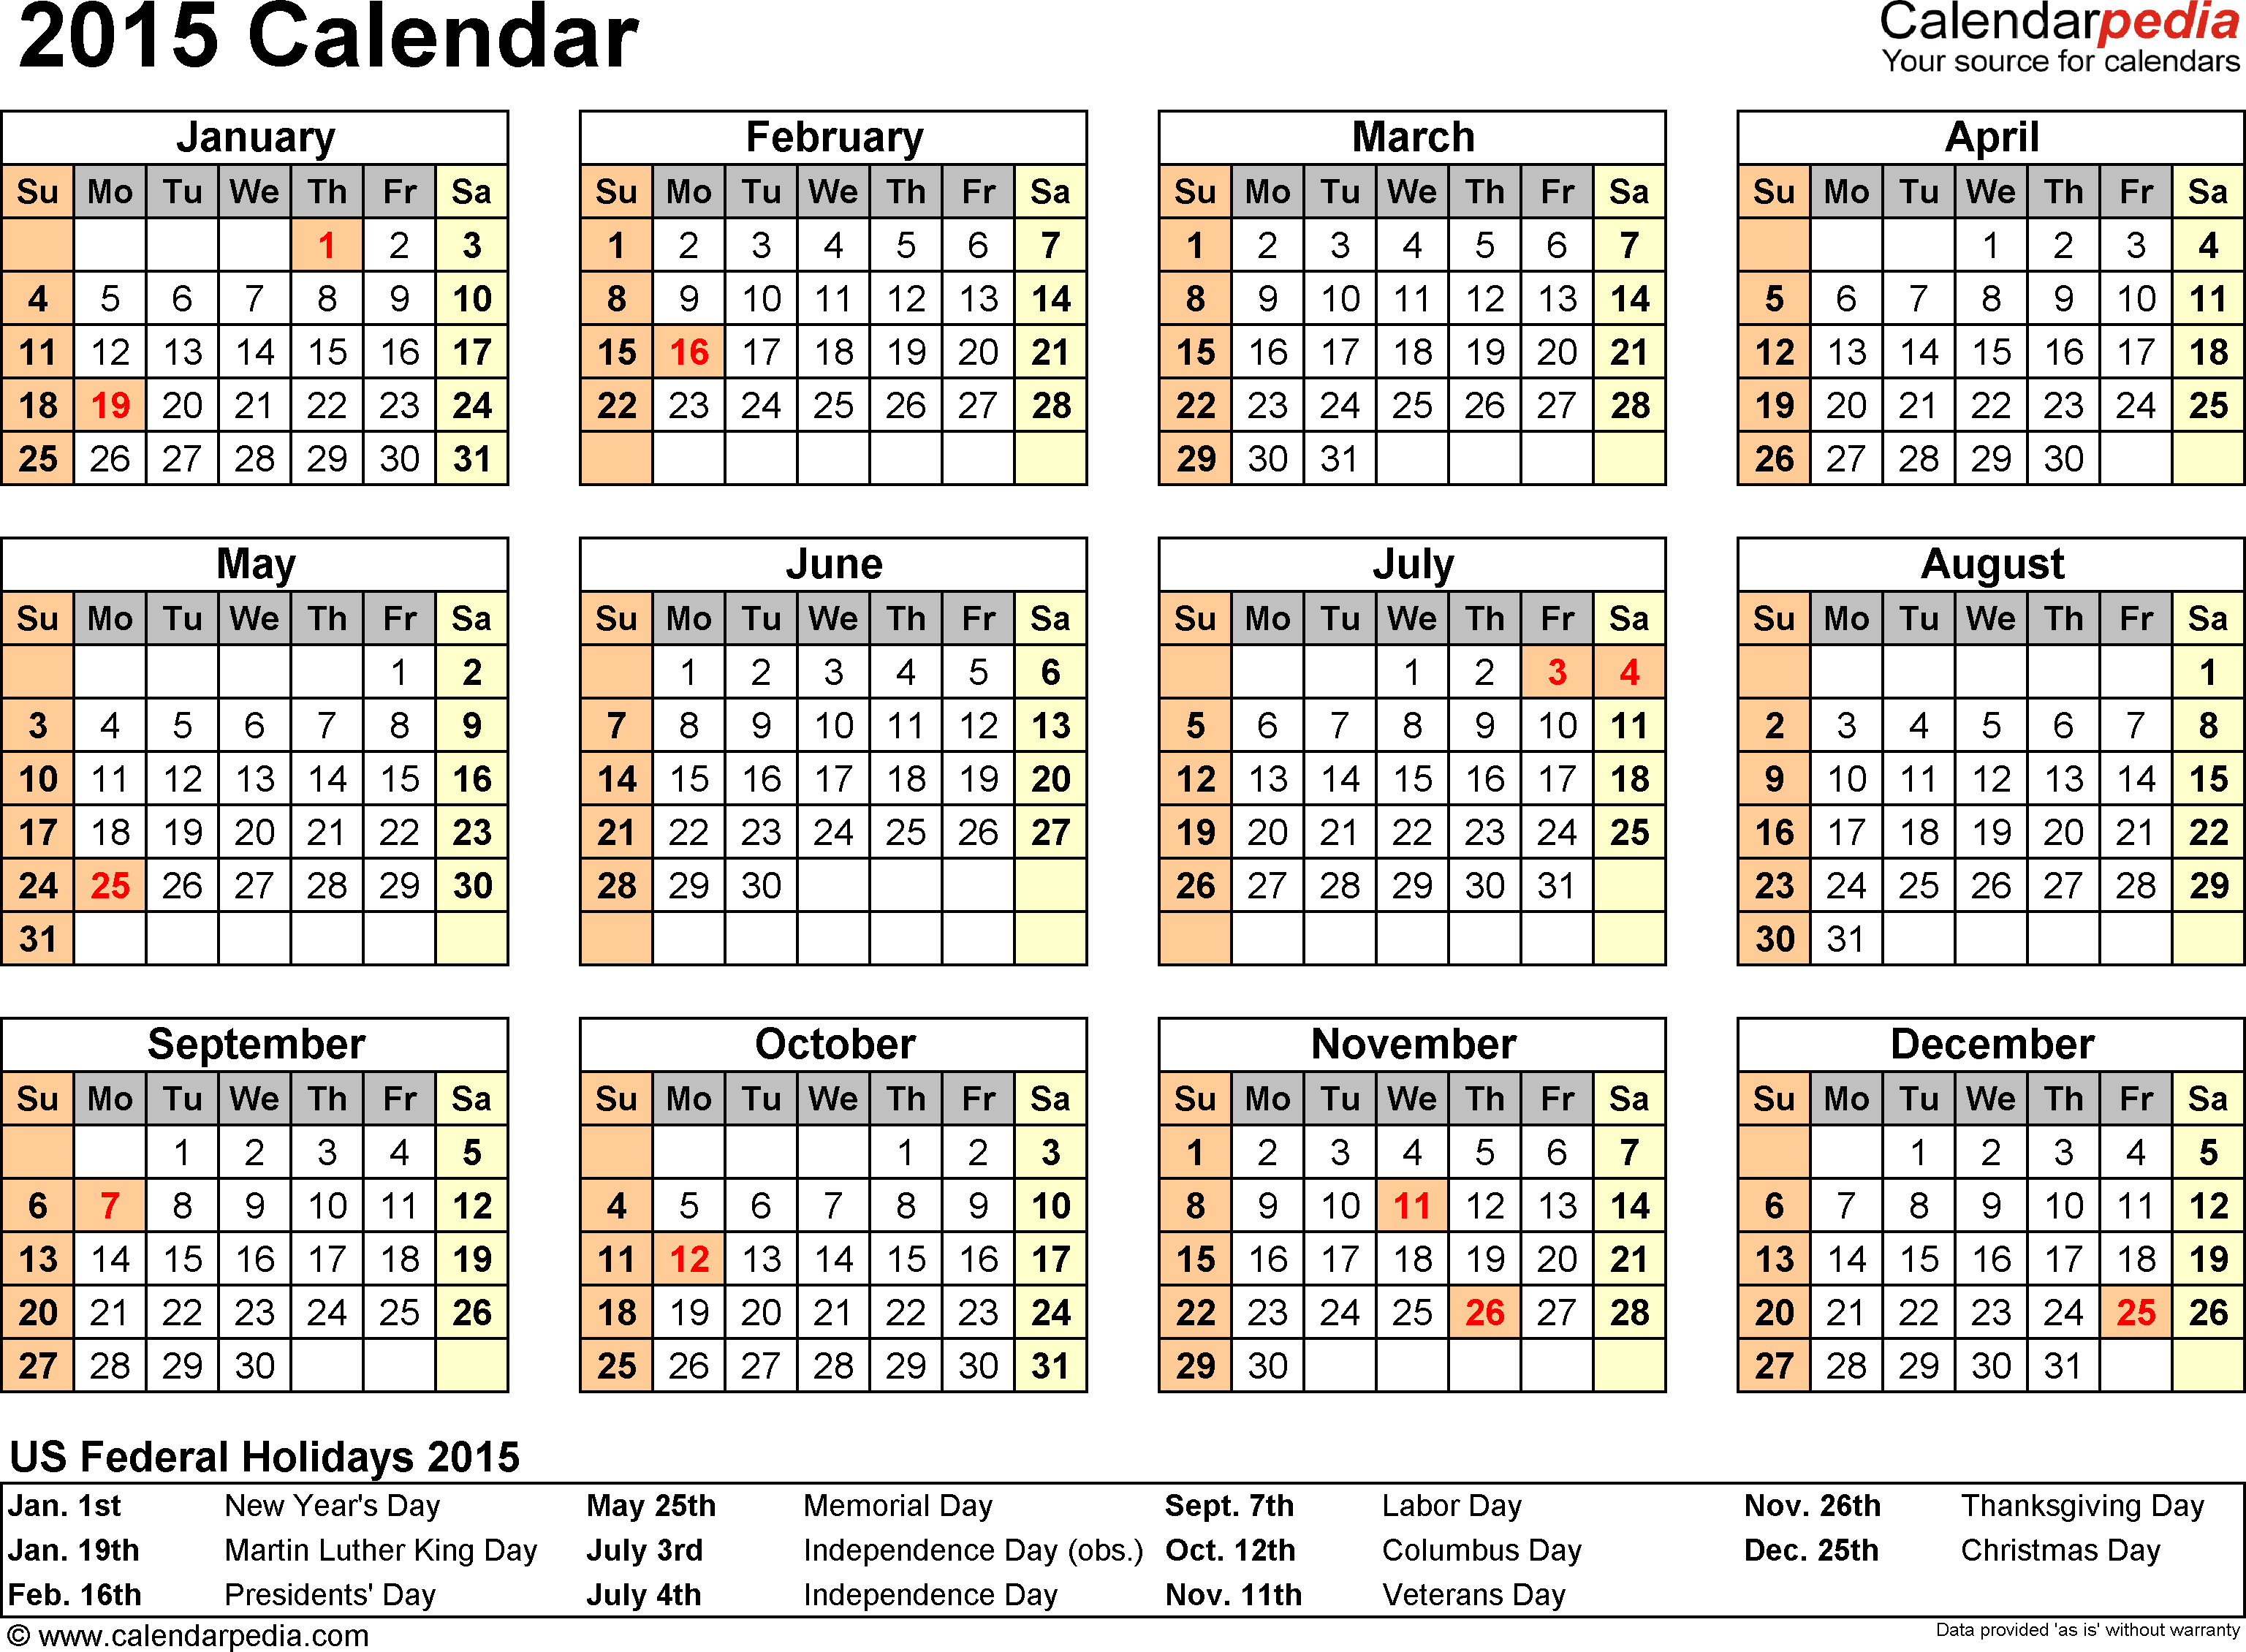 download calendar 2015 landscape as png file